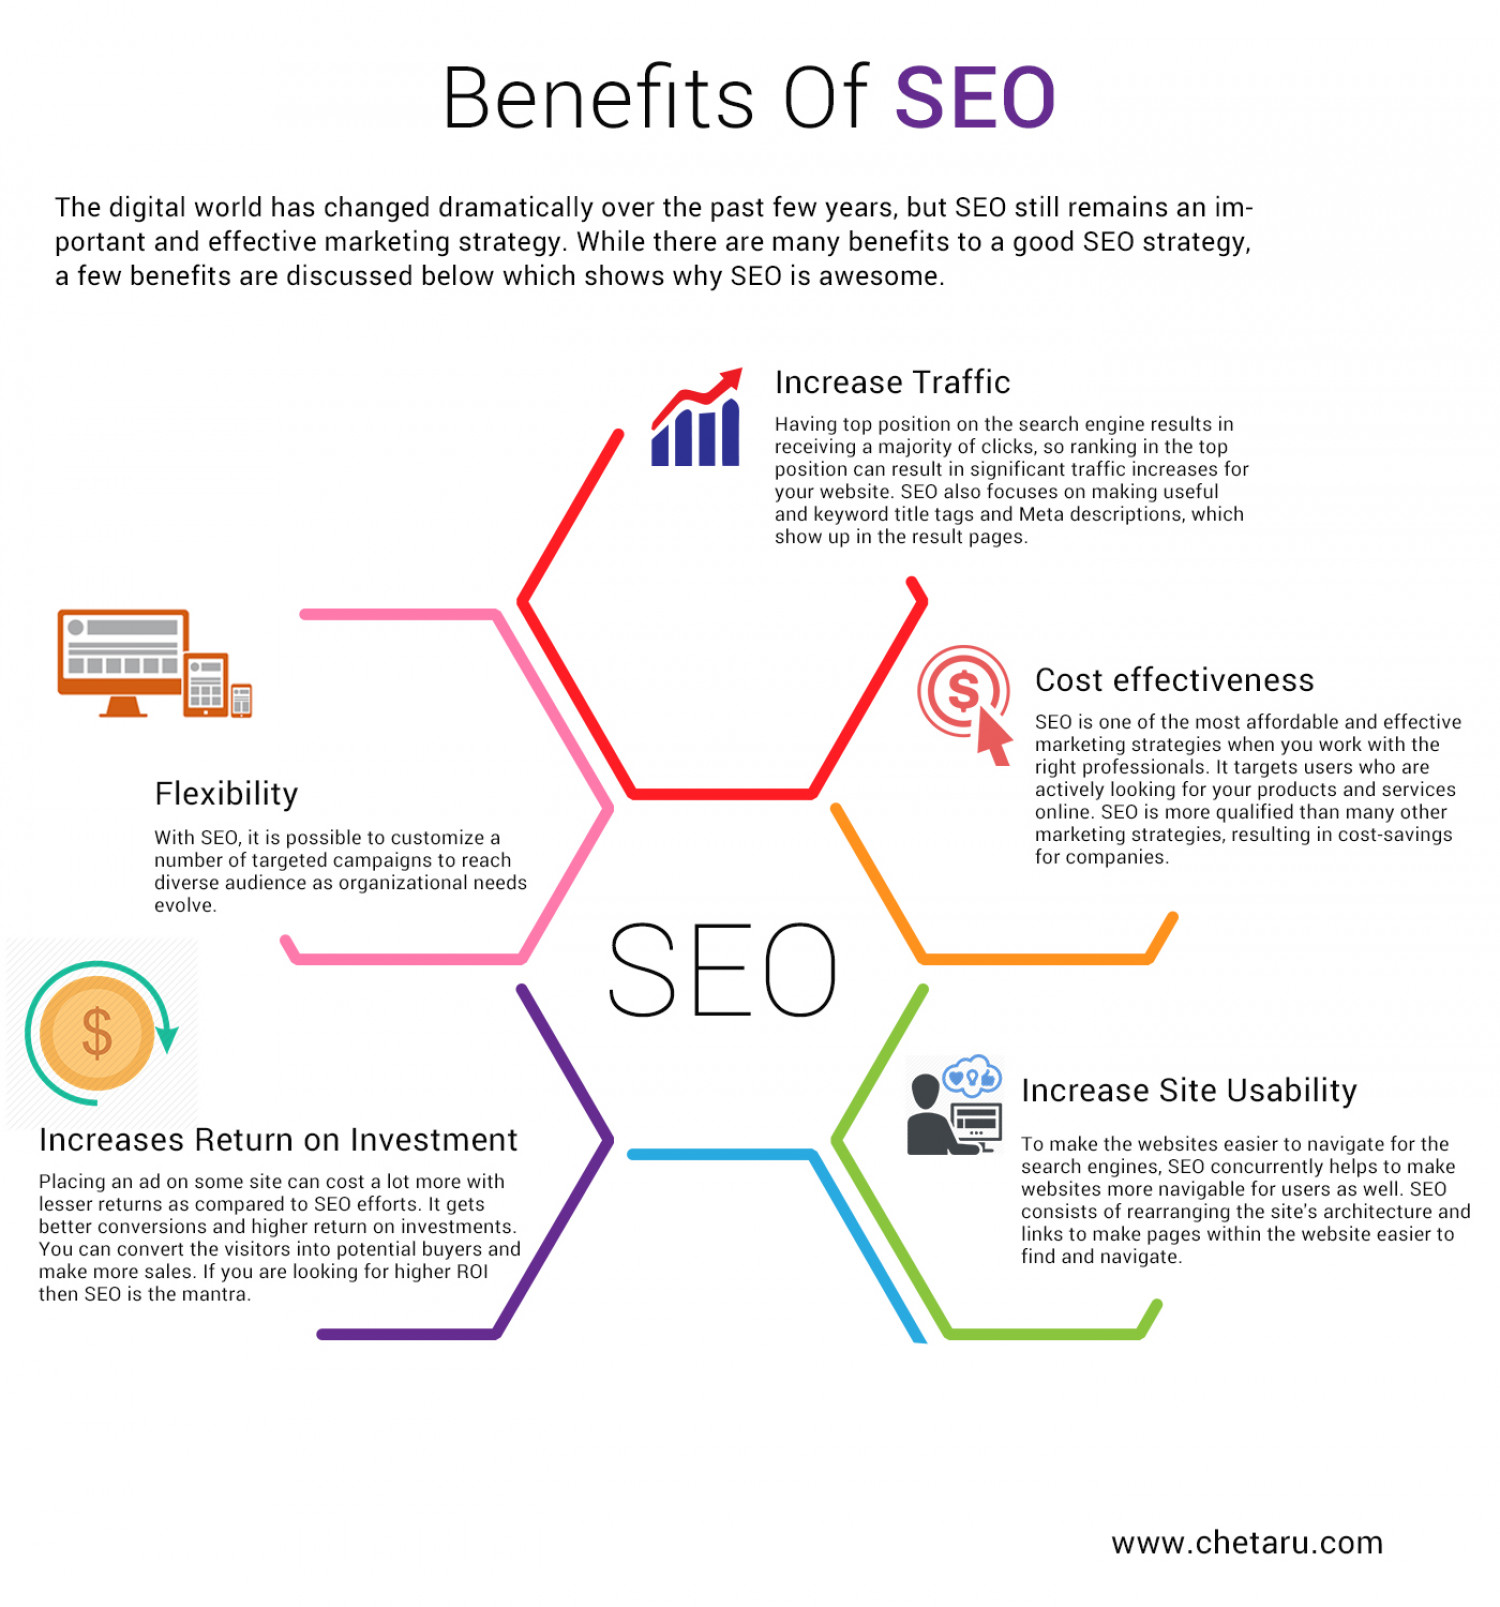 Benefits Of Search Engine Optimization Infographic